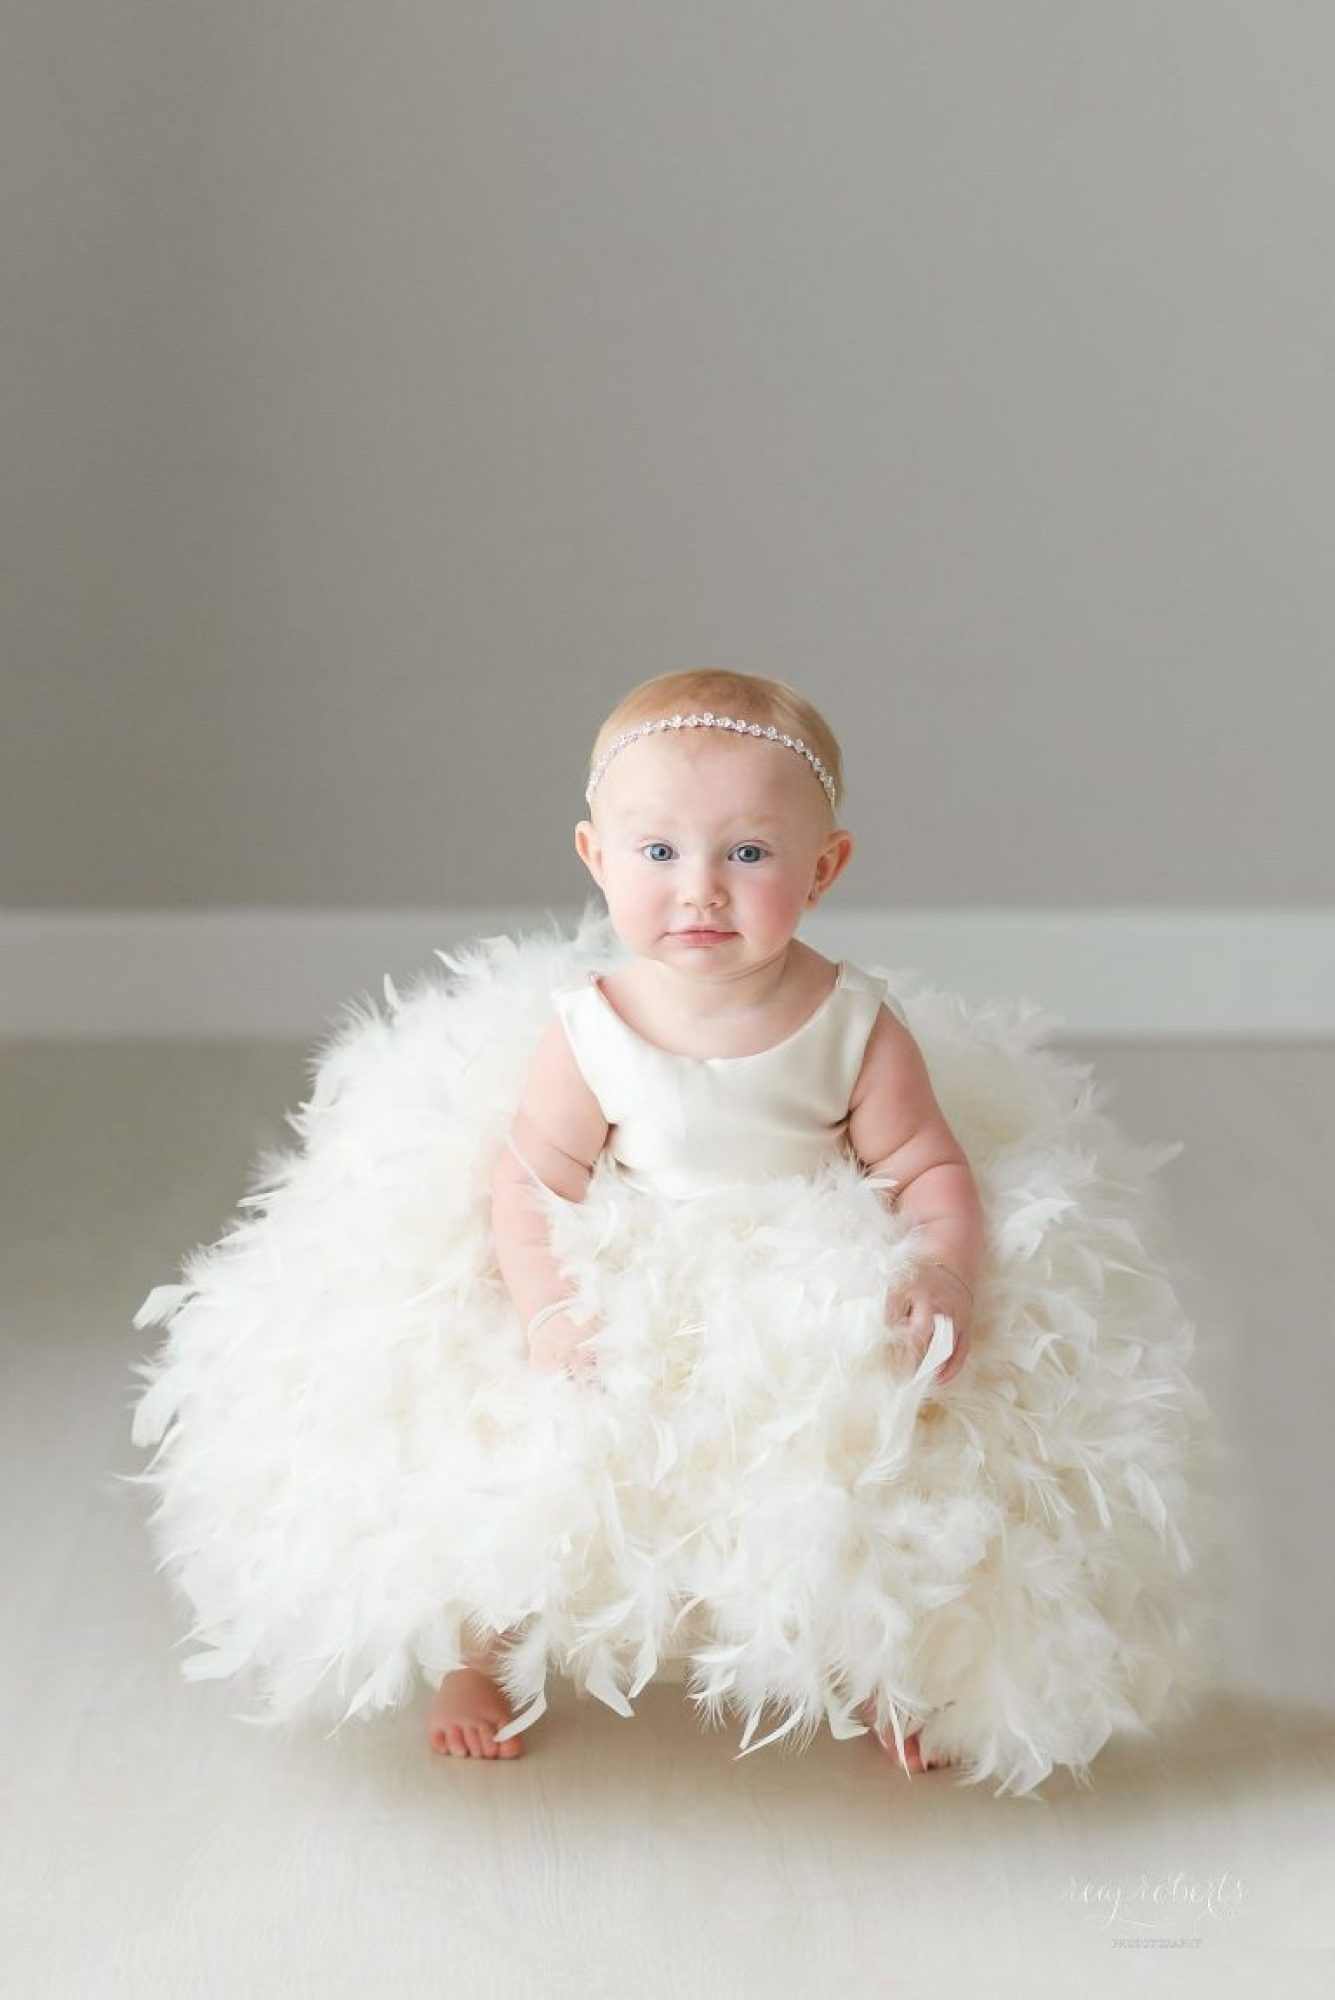 Scottsdale baby and family photographer | Reaj Roberts Photography